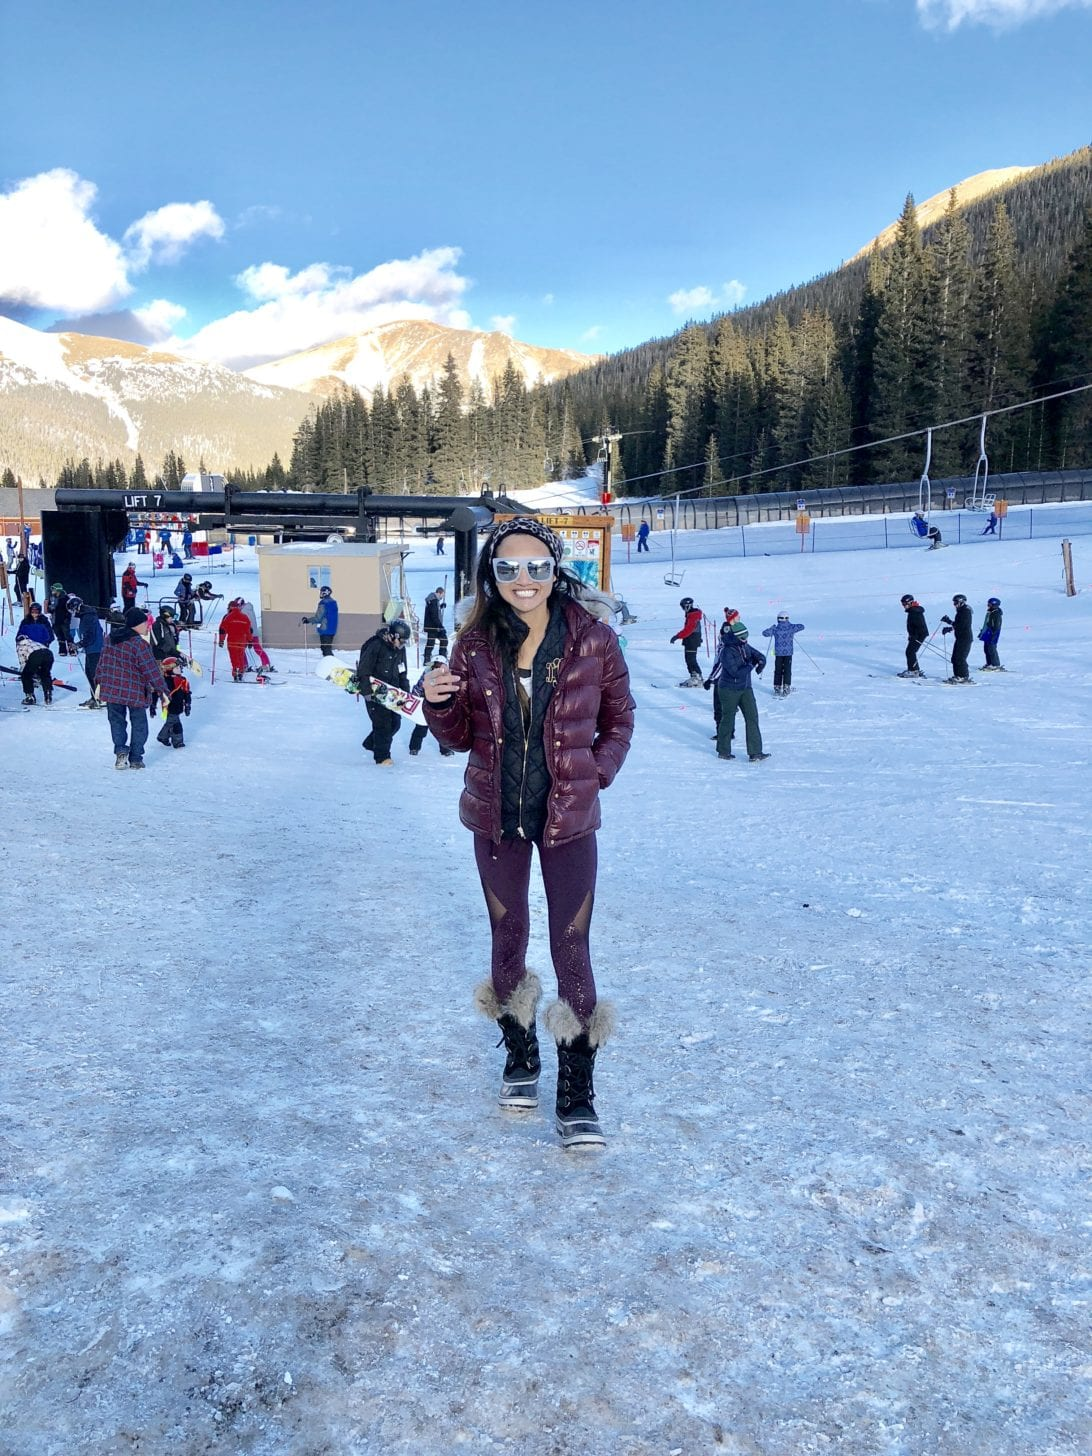 snowboarding, what to wear when snowboarding, what to wear skiing, Ski outfit, snowboard outfit, winter outfit, snow outfit, winter fashion, snow fashion, winter style, puffer jacket, ski pants, Sorel boots, quay sunglasses